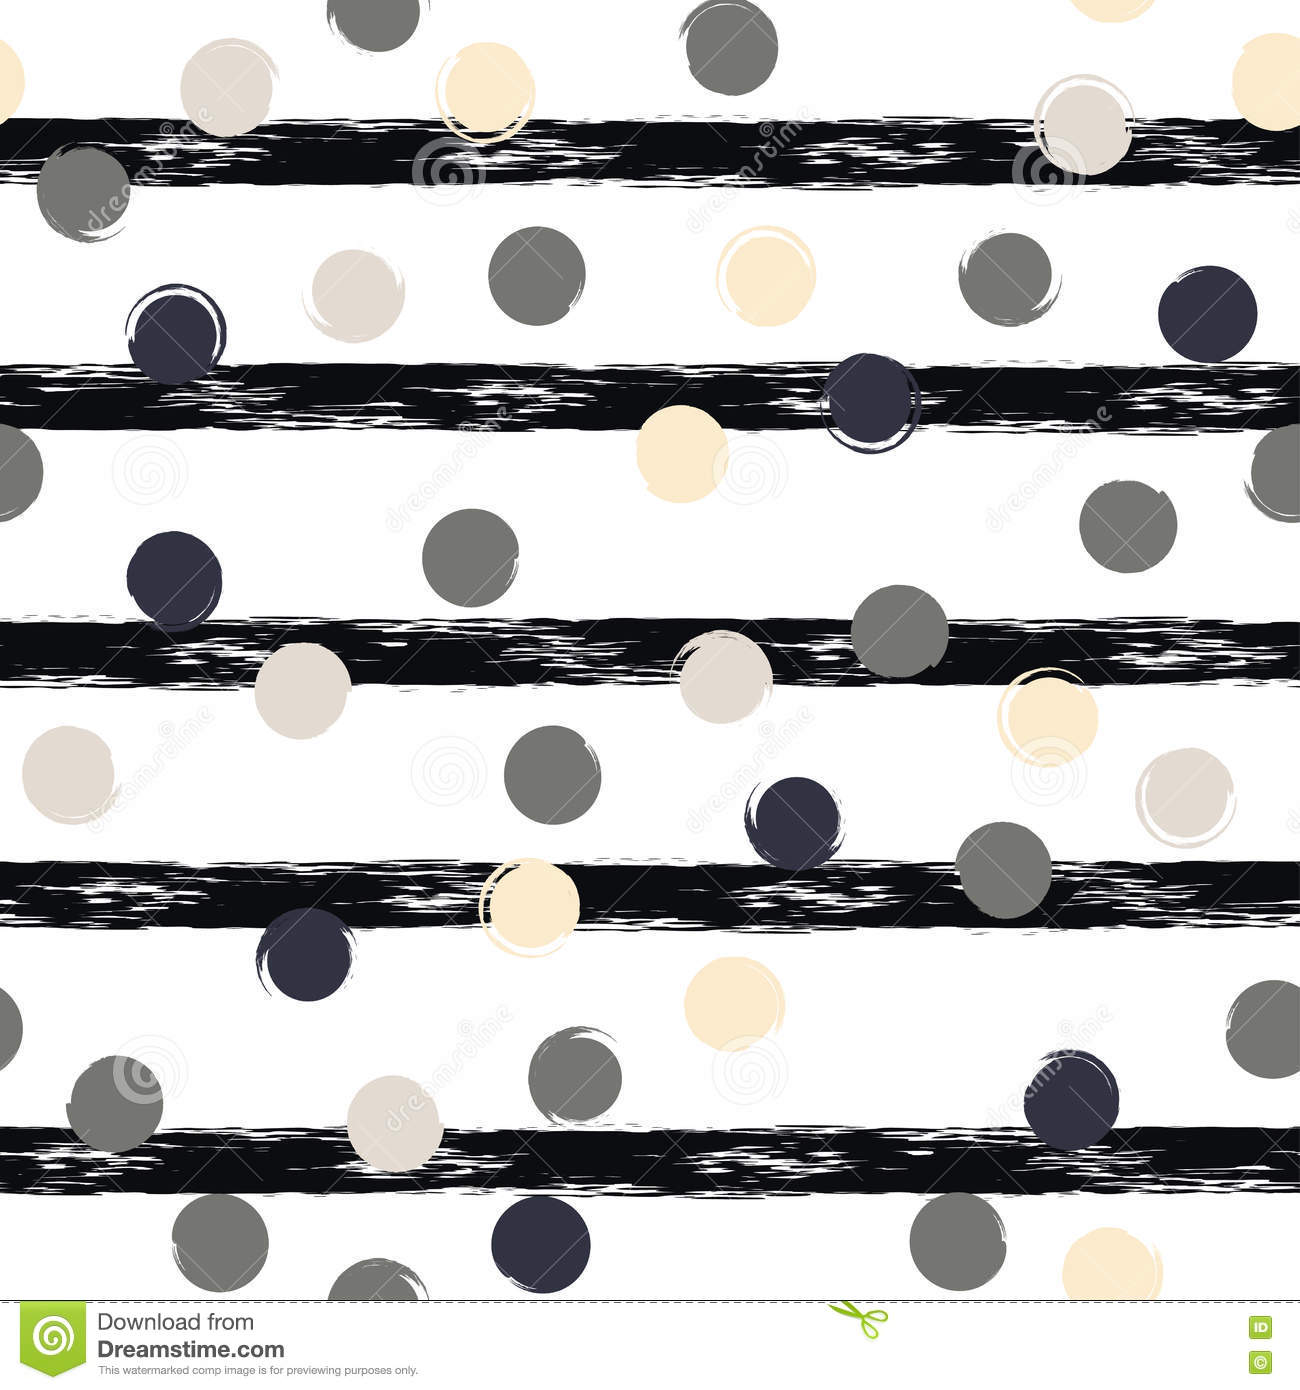 Cute geometric seamless pattern . Polka dots and stripes. Brush strokes. Hand drawn grunge texture. Abstract forms. Endless